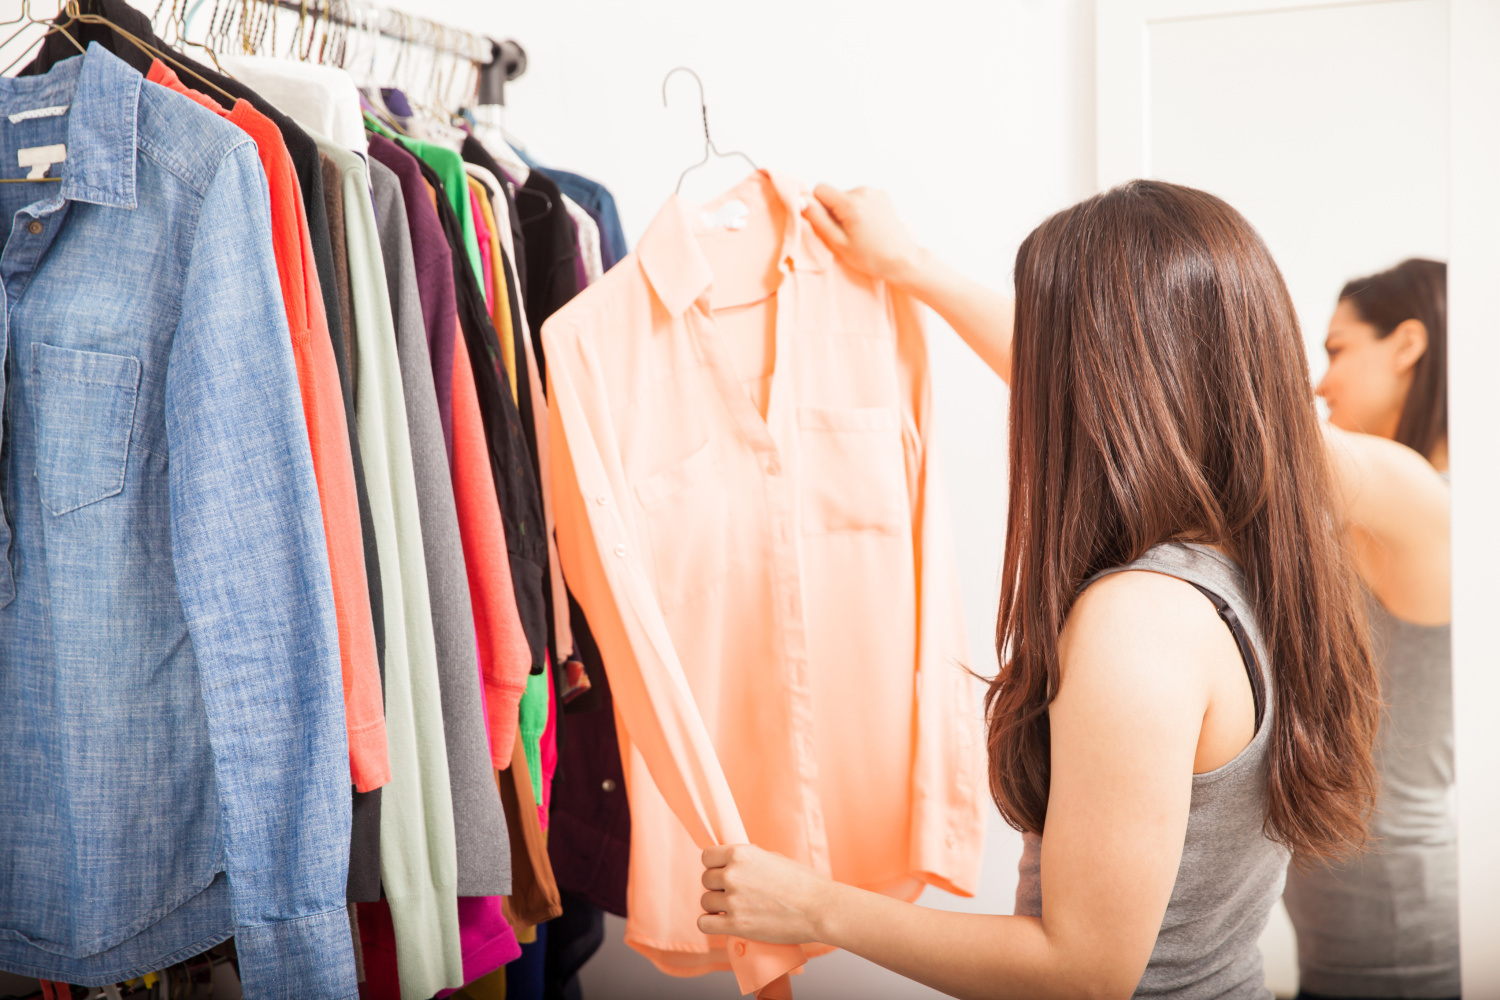 woman getting dressed and decluttering her closet. Where to start decluttering without getting stressed out